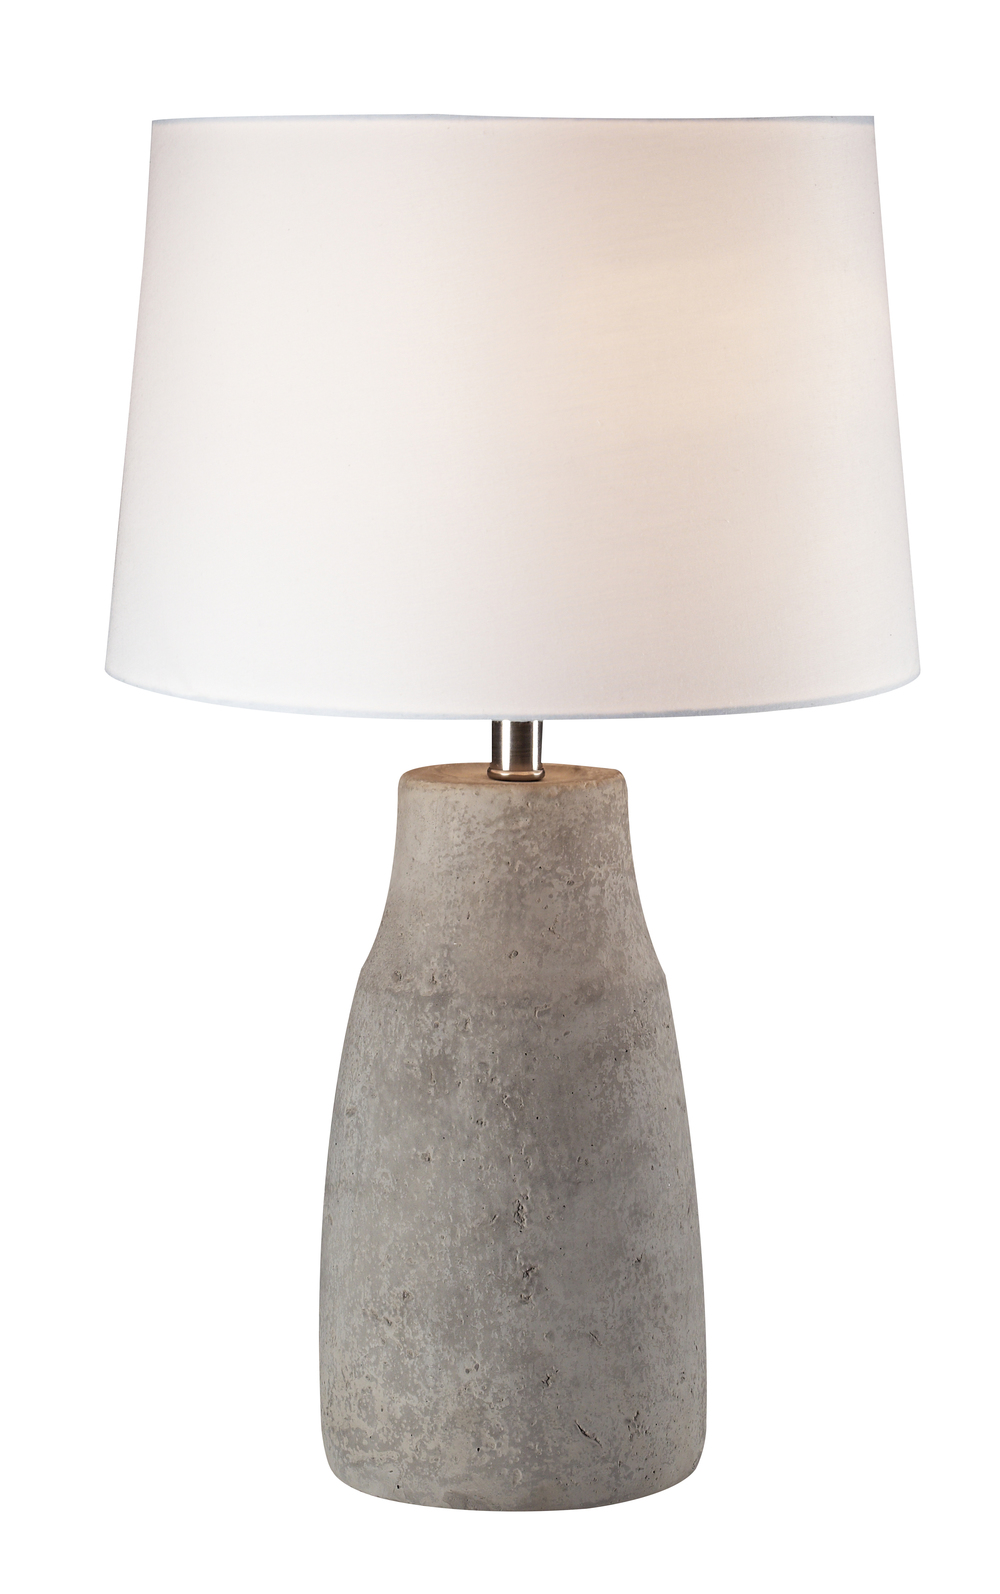 10011 | KONCRETE TABLE LAMP